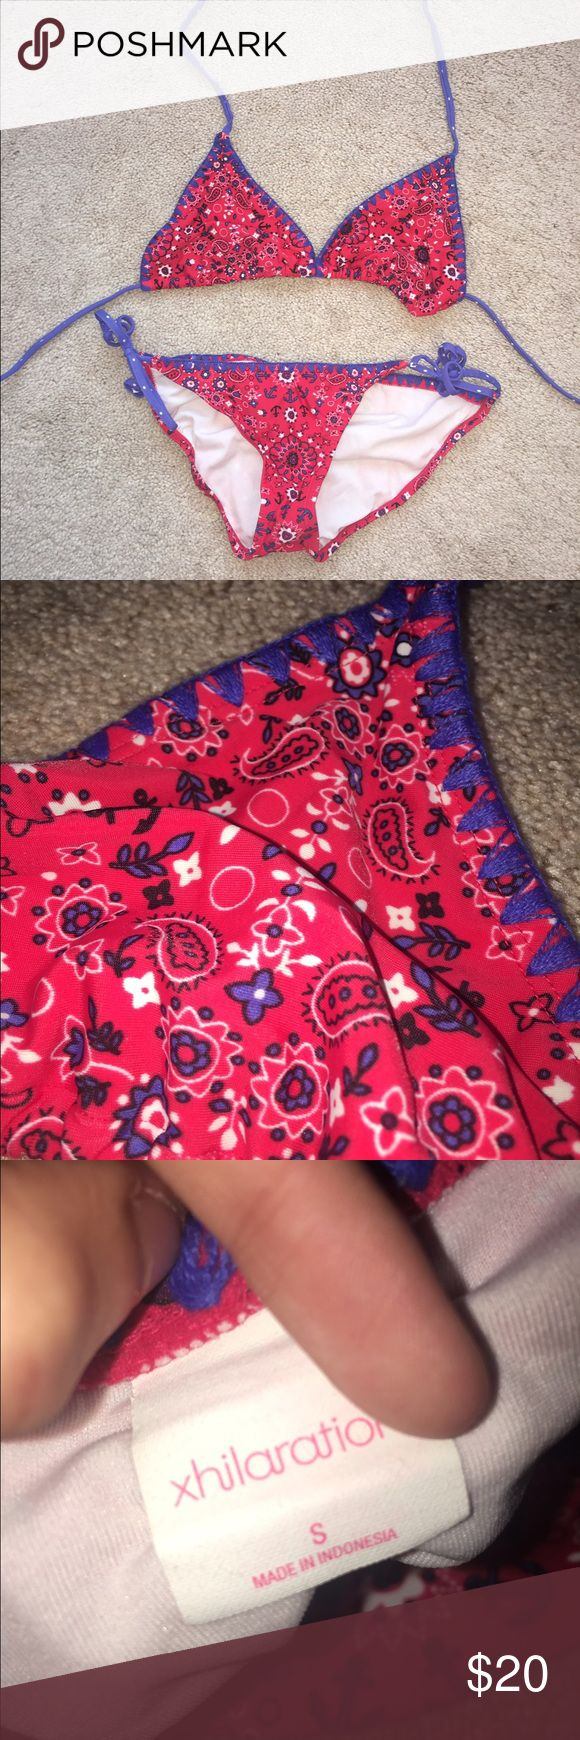 Target Xhilaration Brand Red and Blue Bikini brand: target (xhiralation)  size: small for both, fits true to size condition: like new originally $35 for the set  colors: red, blue, and white  ruched detail on the bottoms, tied at the sides  unlined triangle style top Xhilaration Swim Bikinis